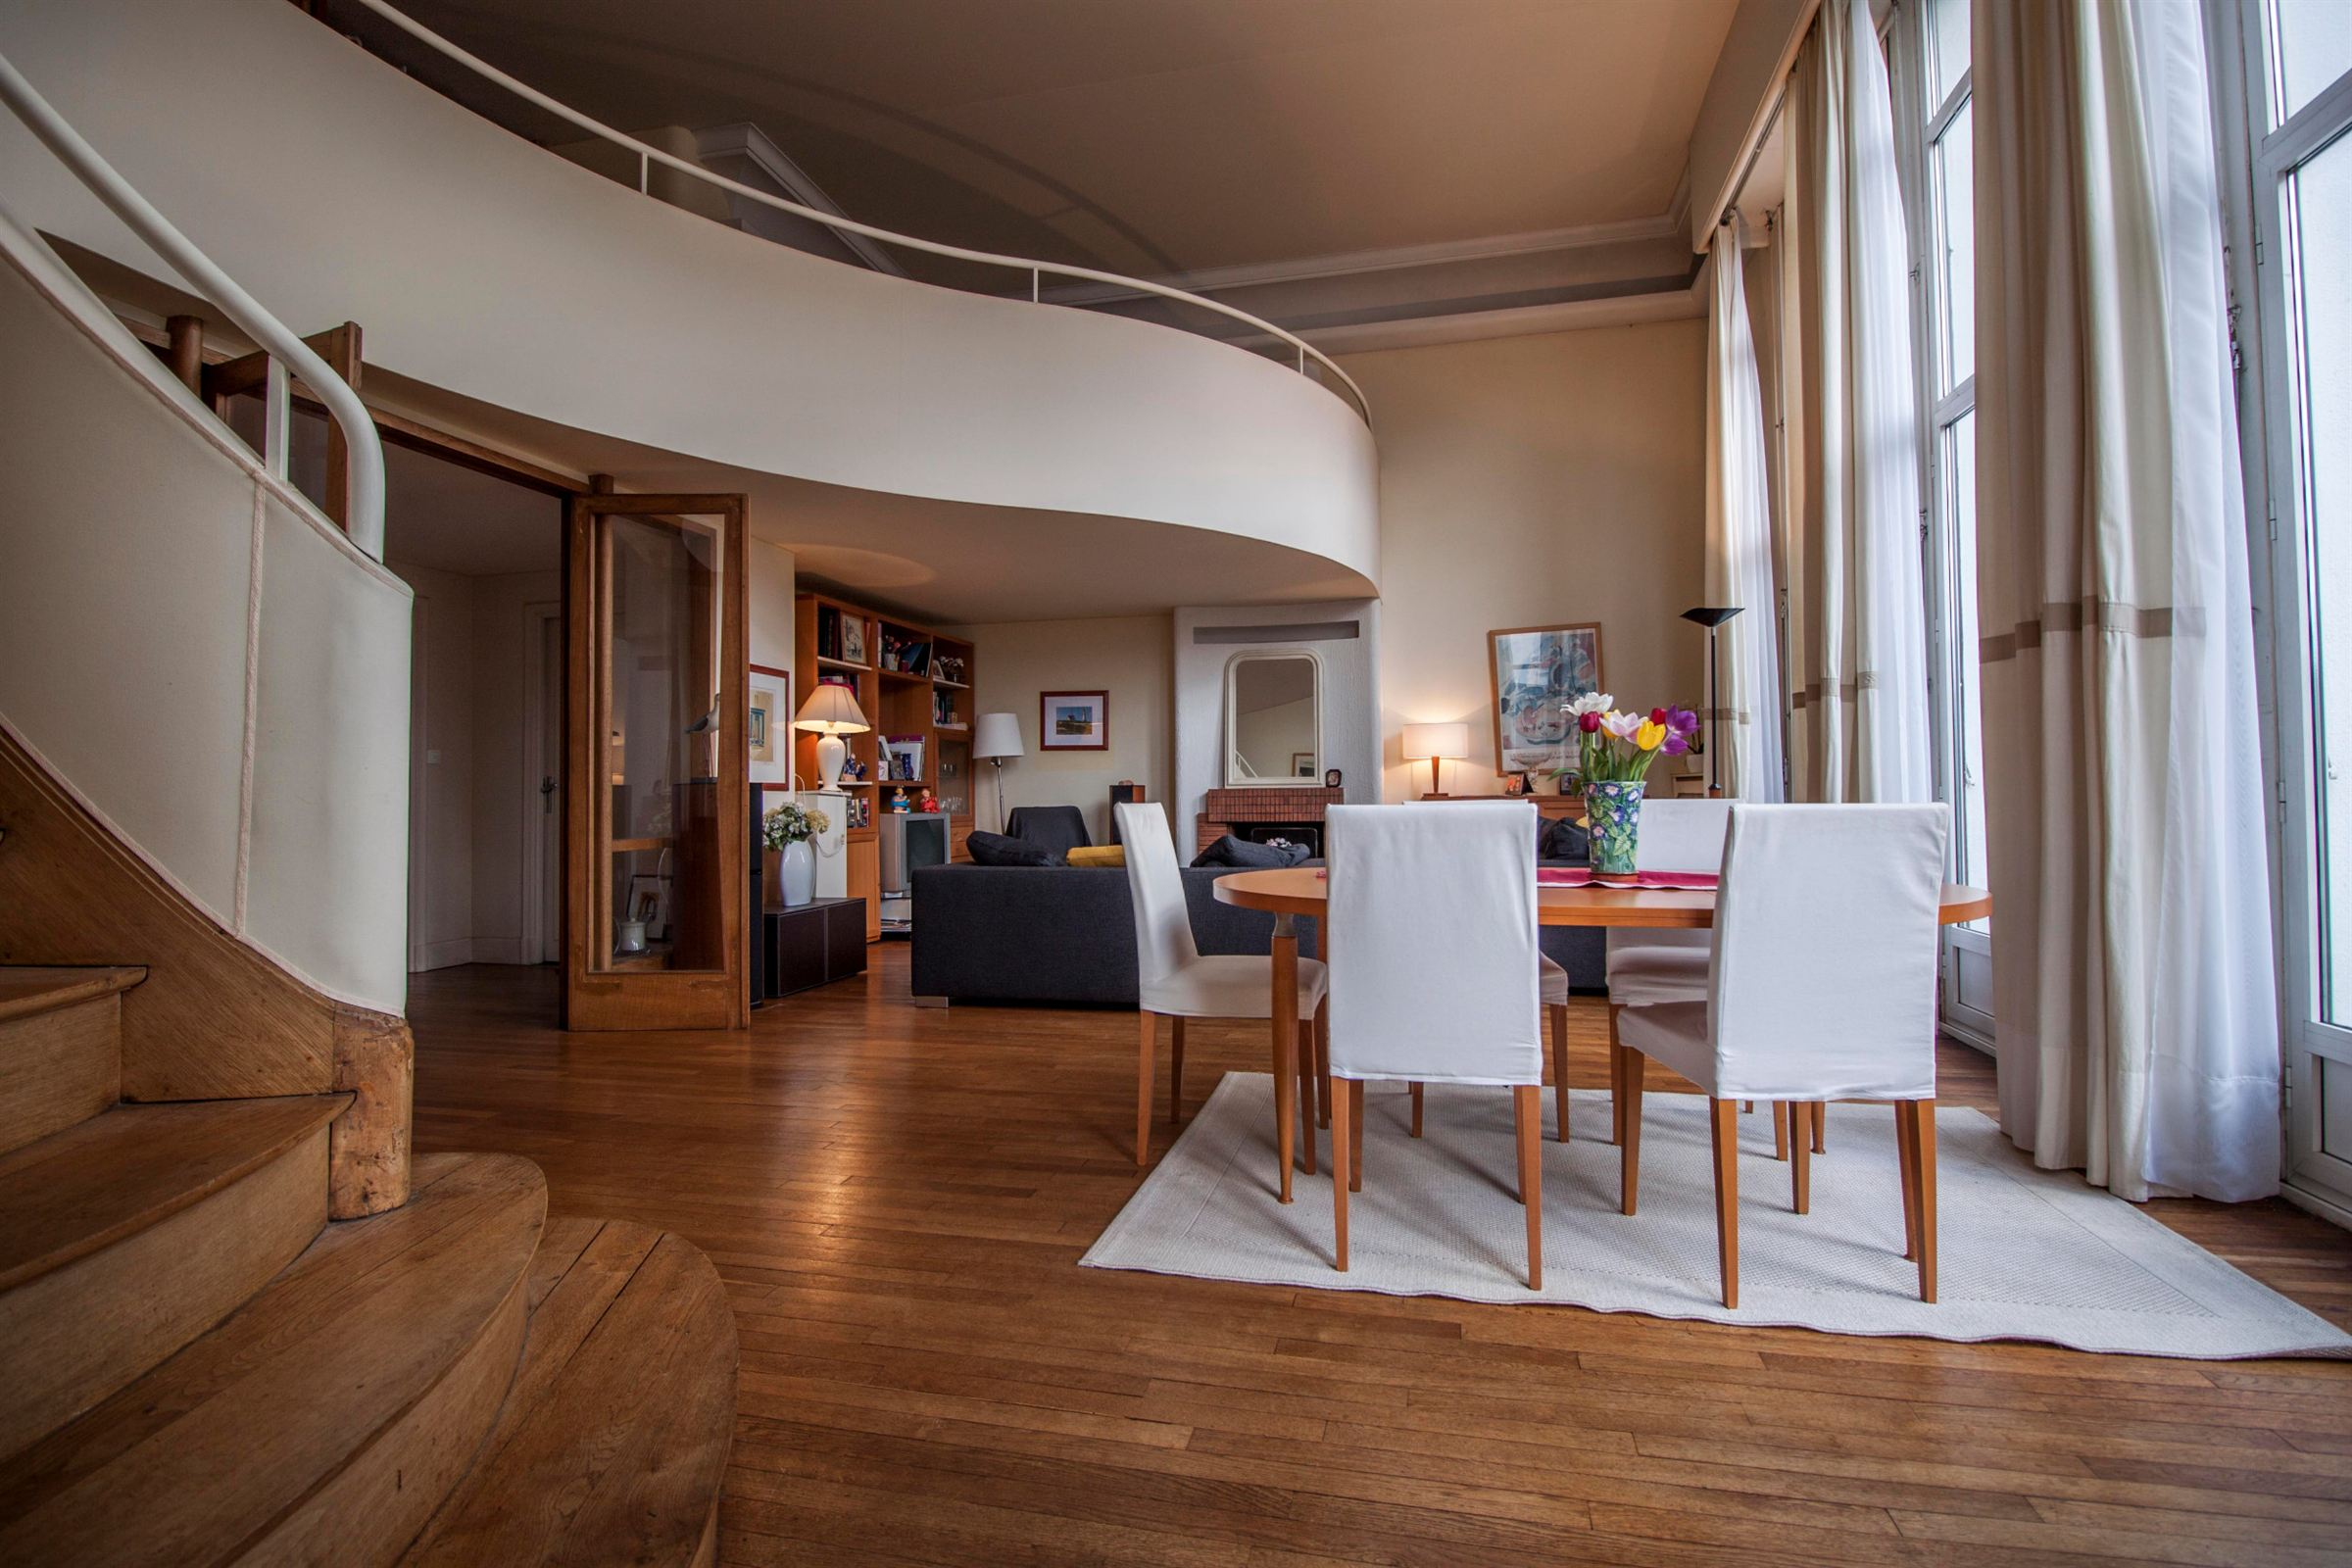 sales property at Lorient, city-center, appartment artdeco style.